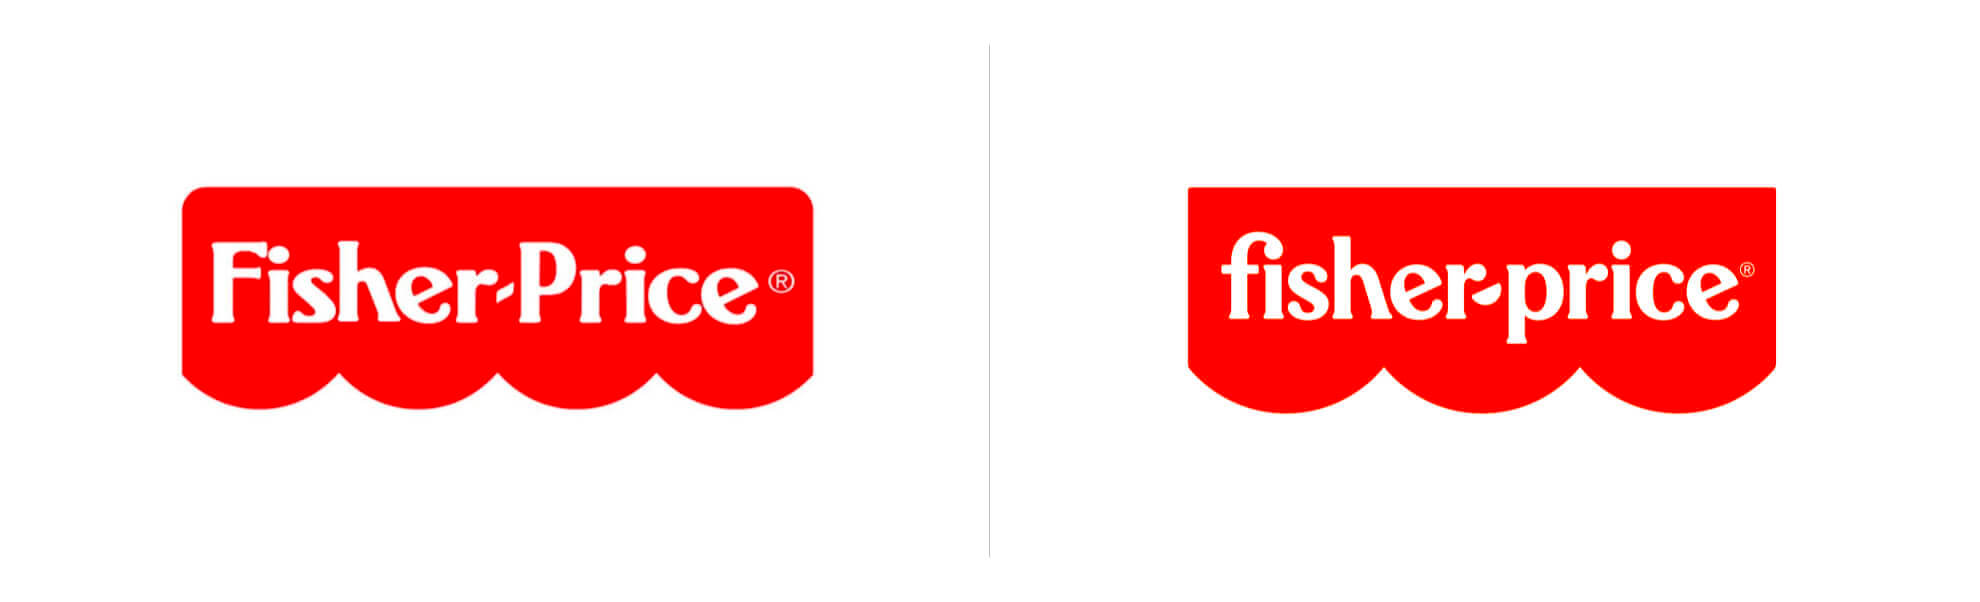 nowe logo Fisher-Price